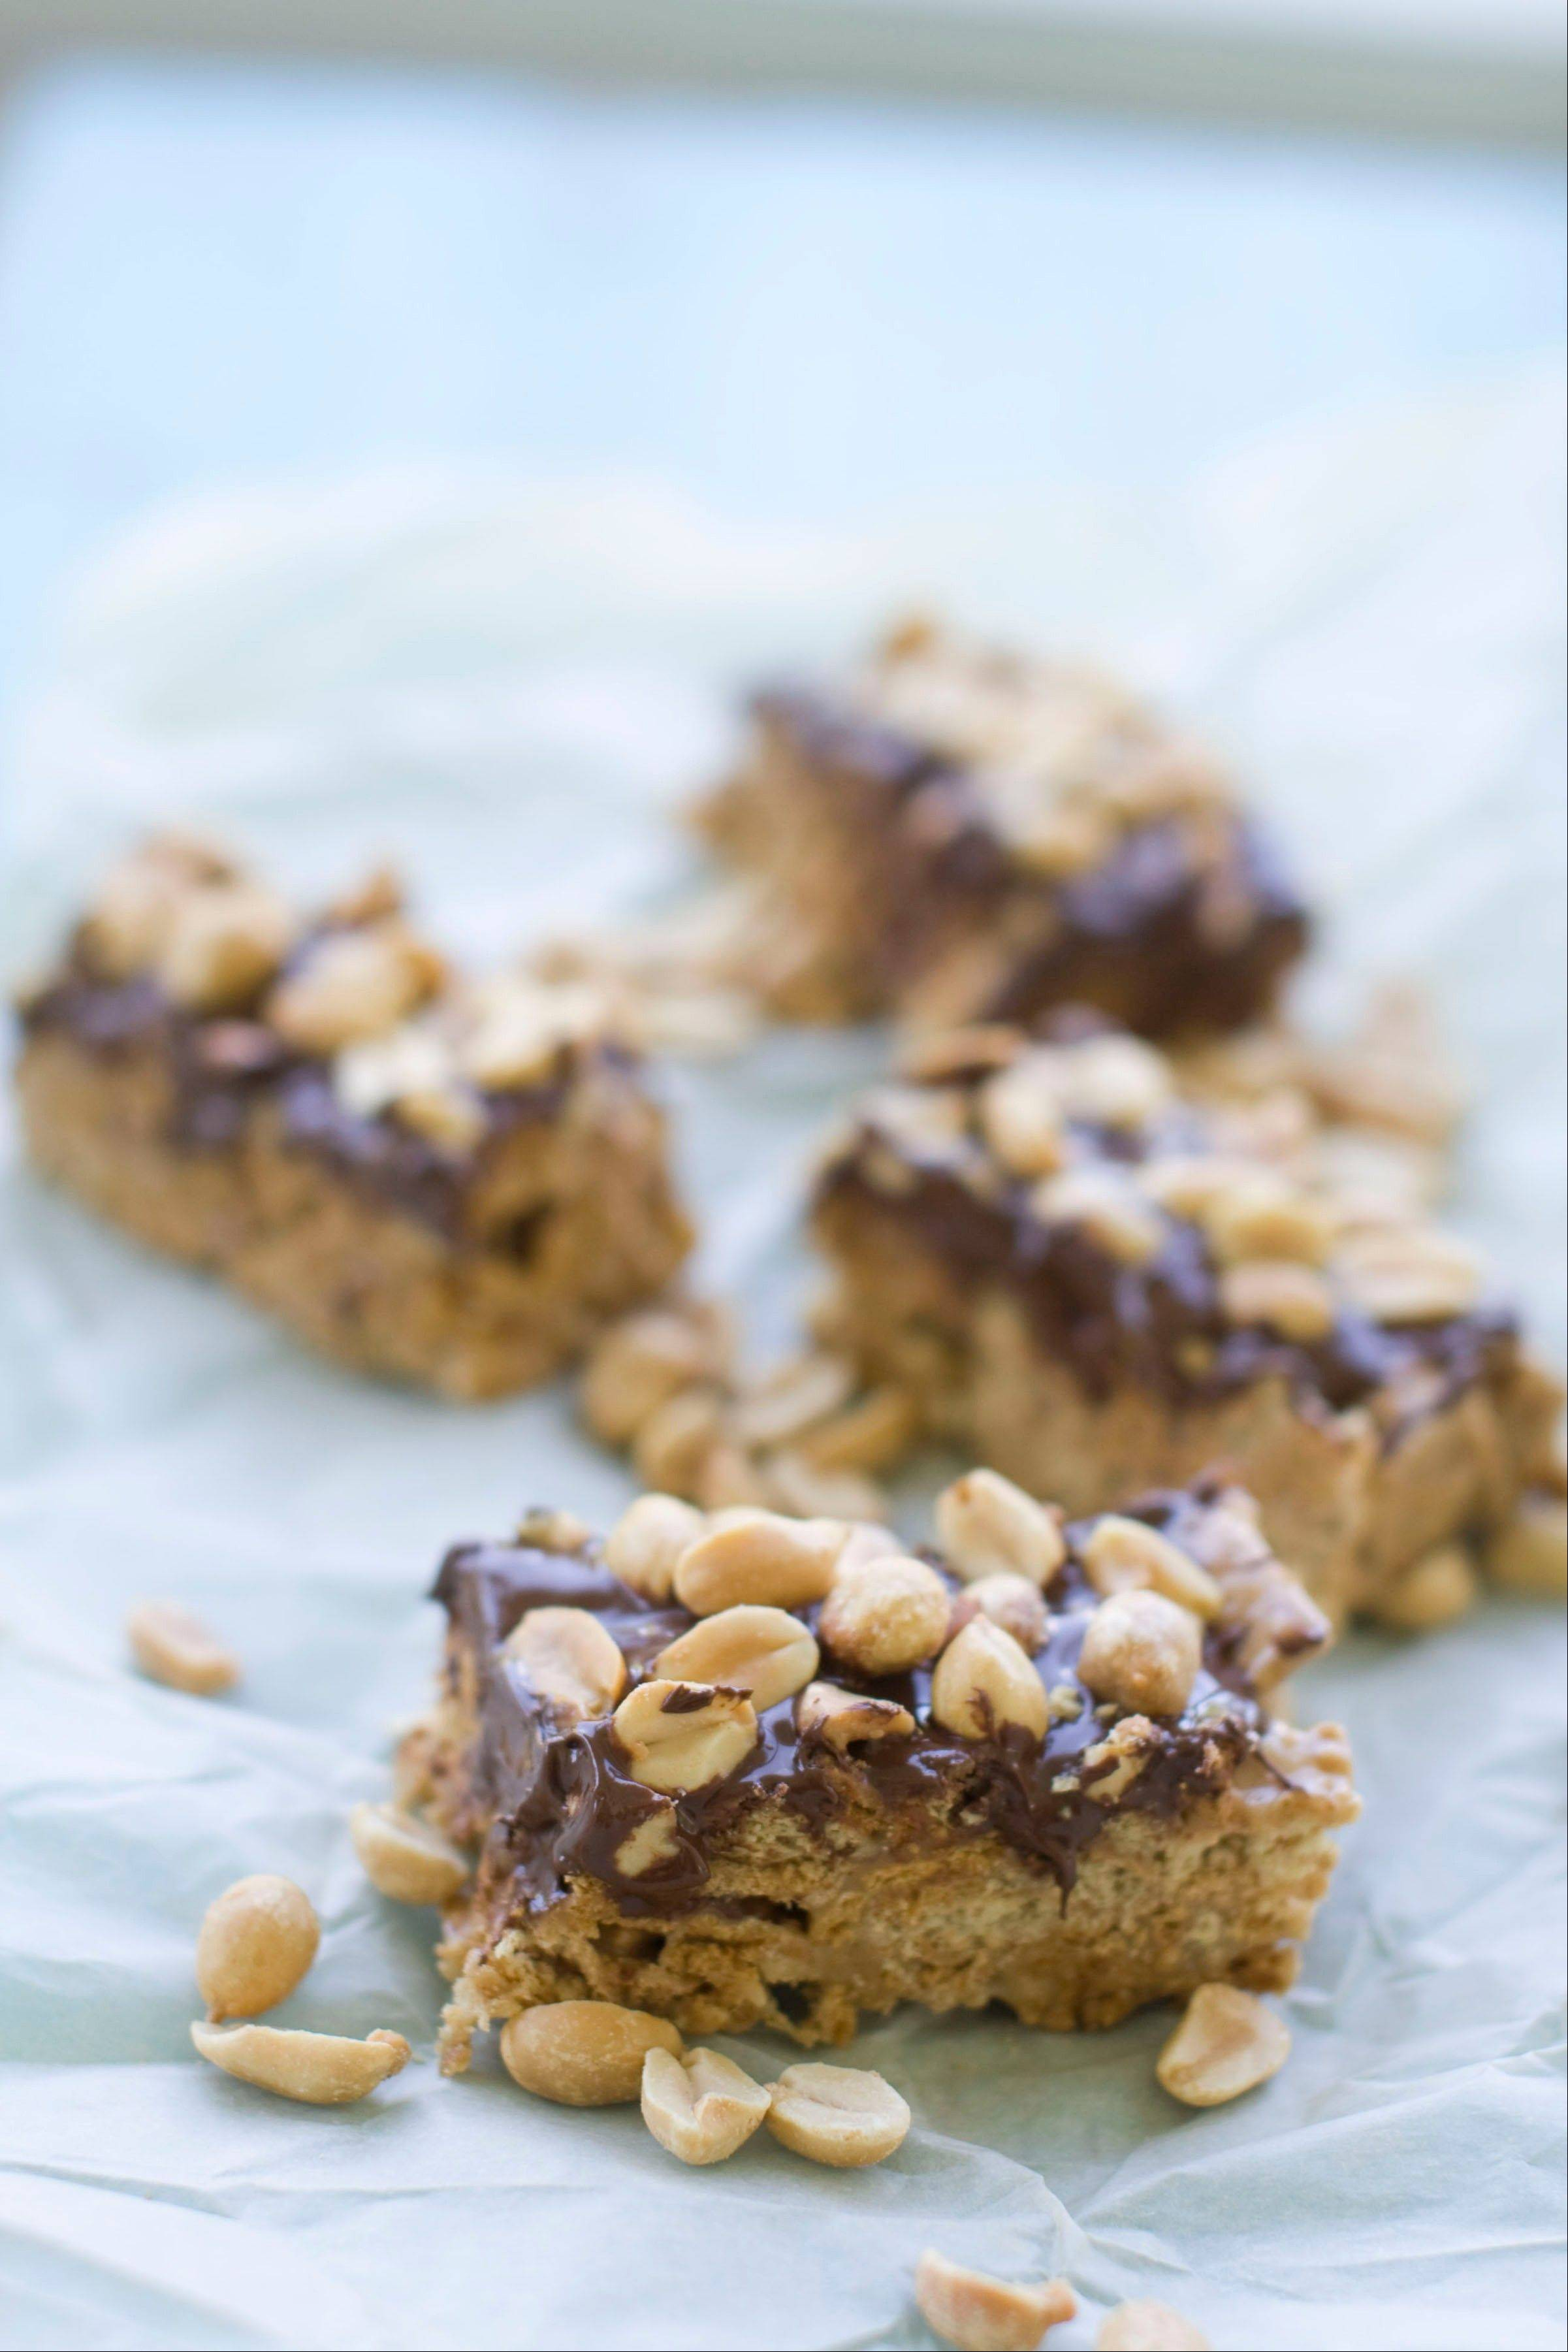 What could be better than a s'mores after school? A Peanut Butter S'Mores Bars, of course.